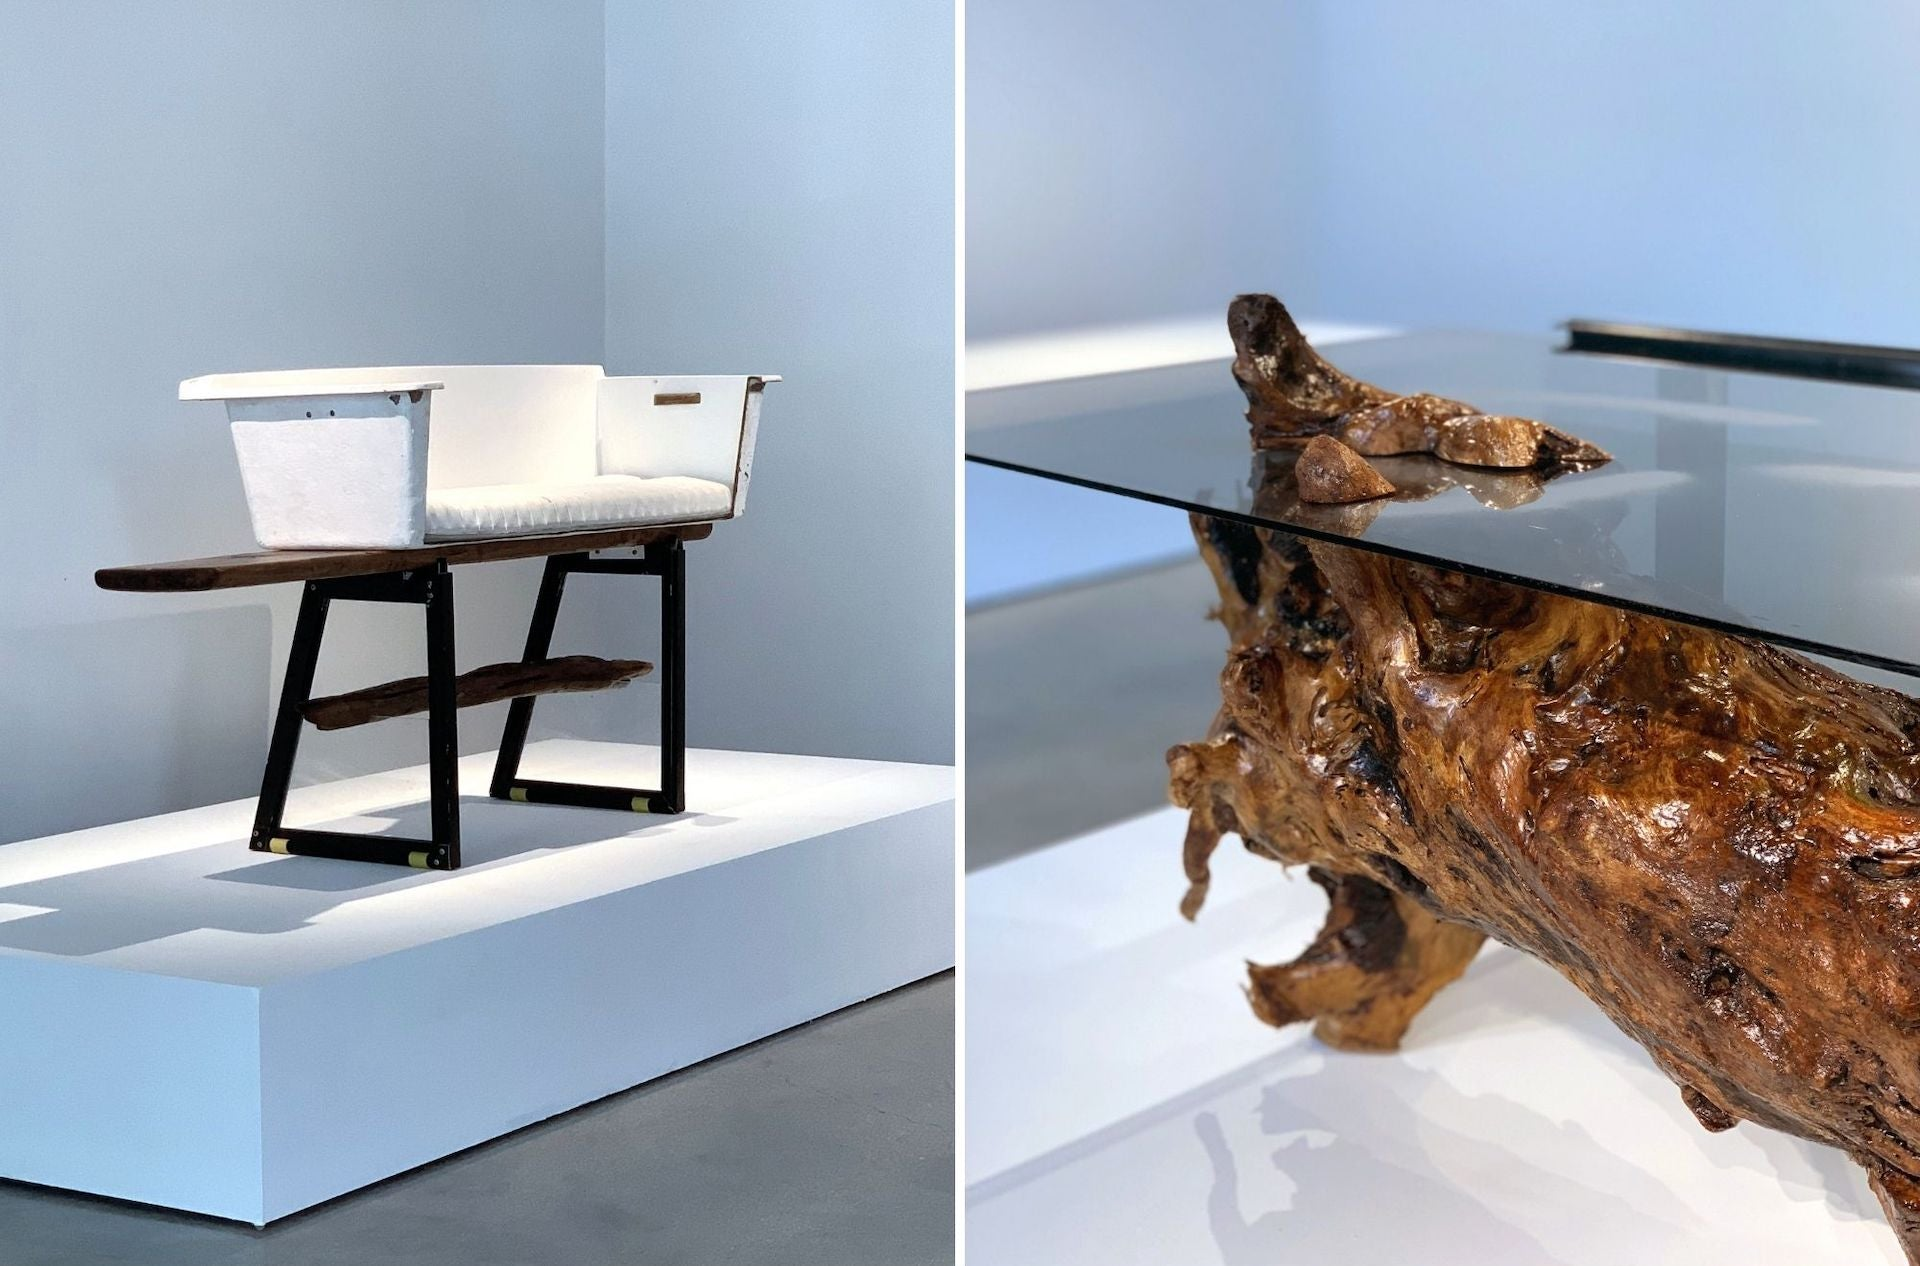 33.3 Pounds Chair and 37.3 Pounds Table by Quinaz Studio, 2021. Photo © Quinaz Studio